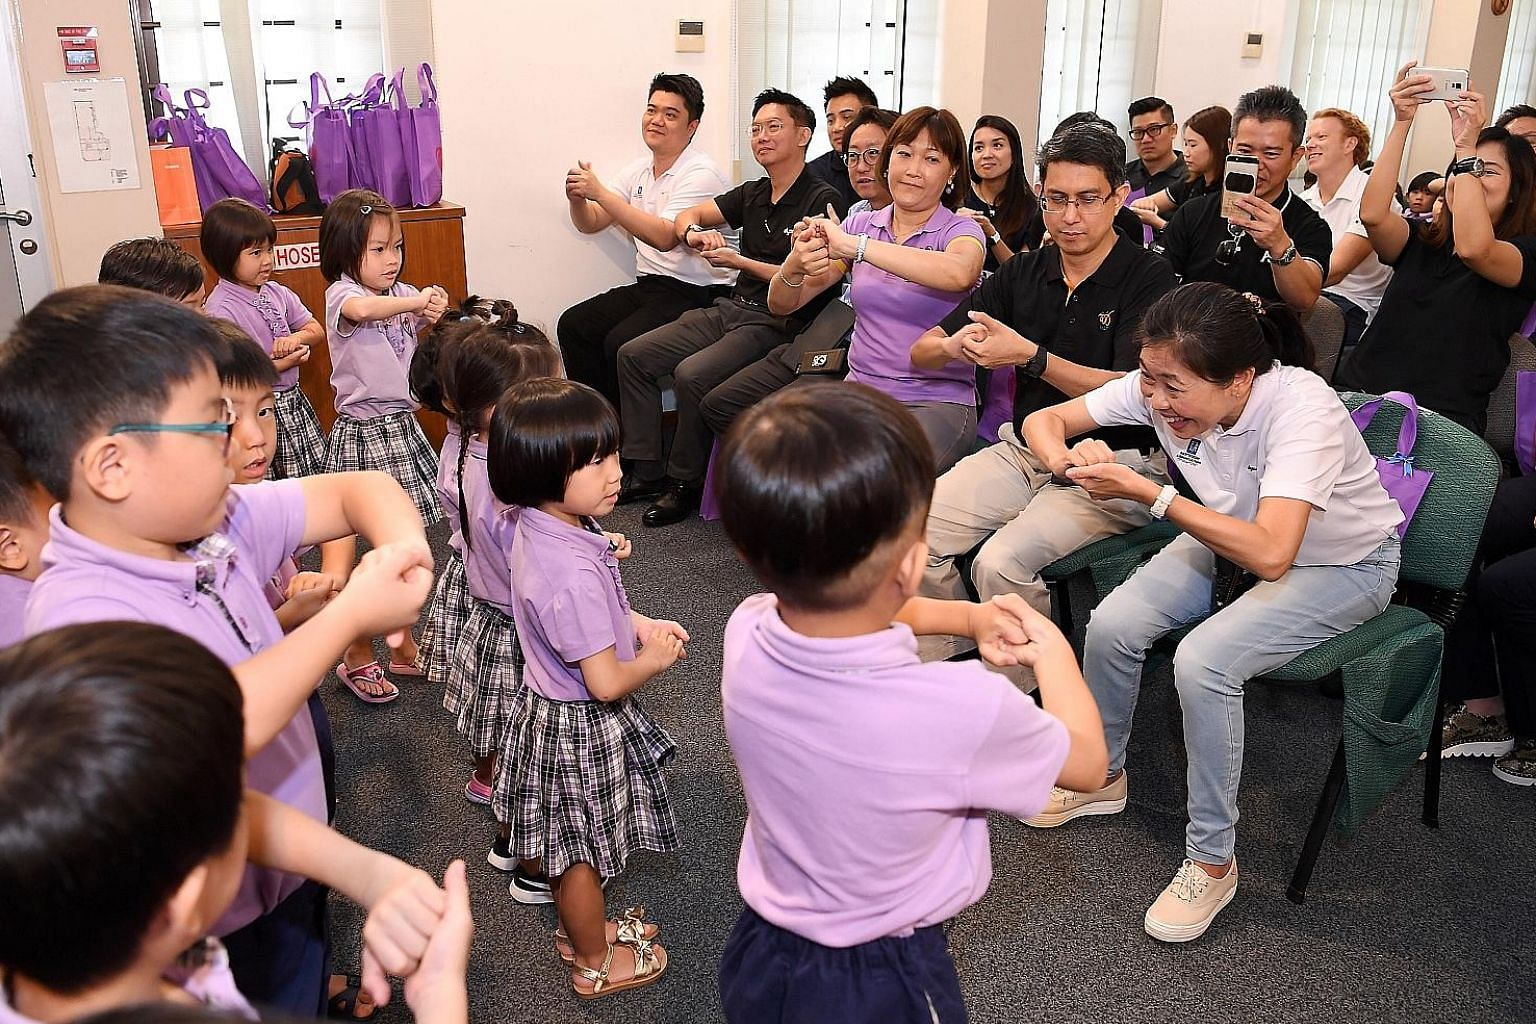 From right: RAS president Tan Puay Hoon, Associate Professor Muhammad Faishal Ibrahim and Ms Brands Ng, director of Cherie Hearts @ Charlton, joining in as the pre-schoolers put on a performance, showing how to wash their hands properly.